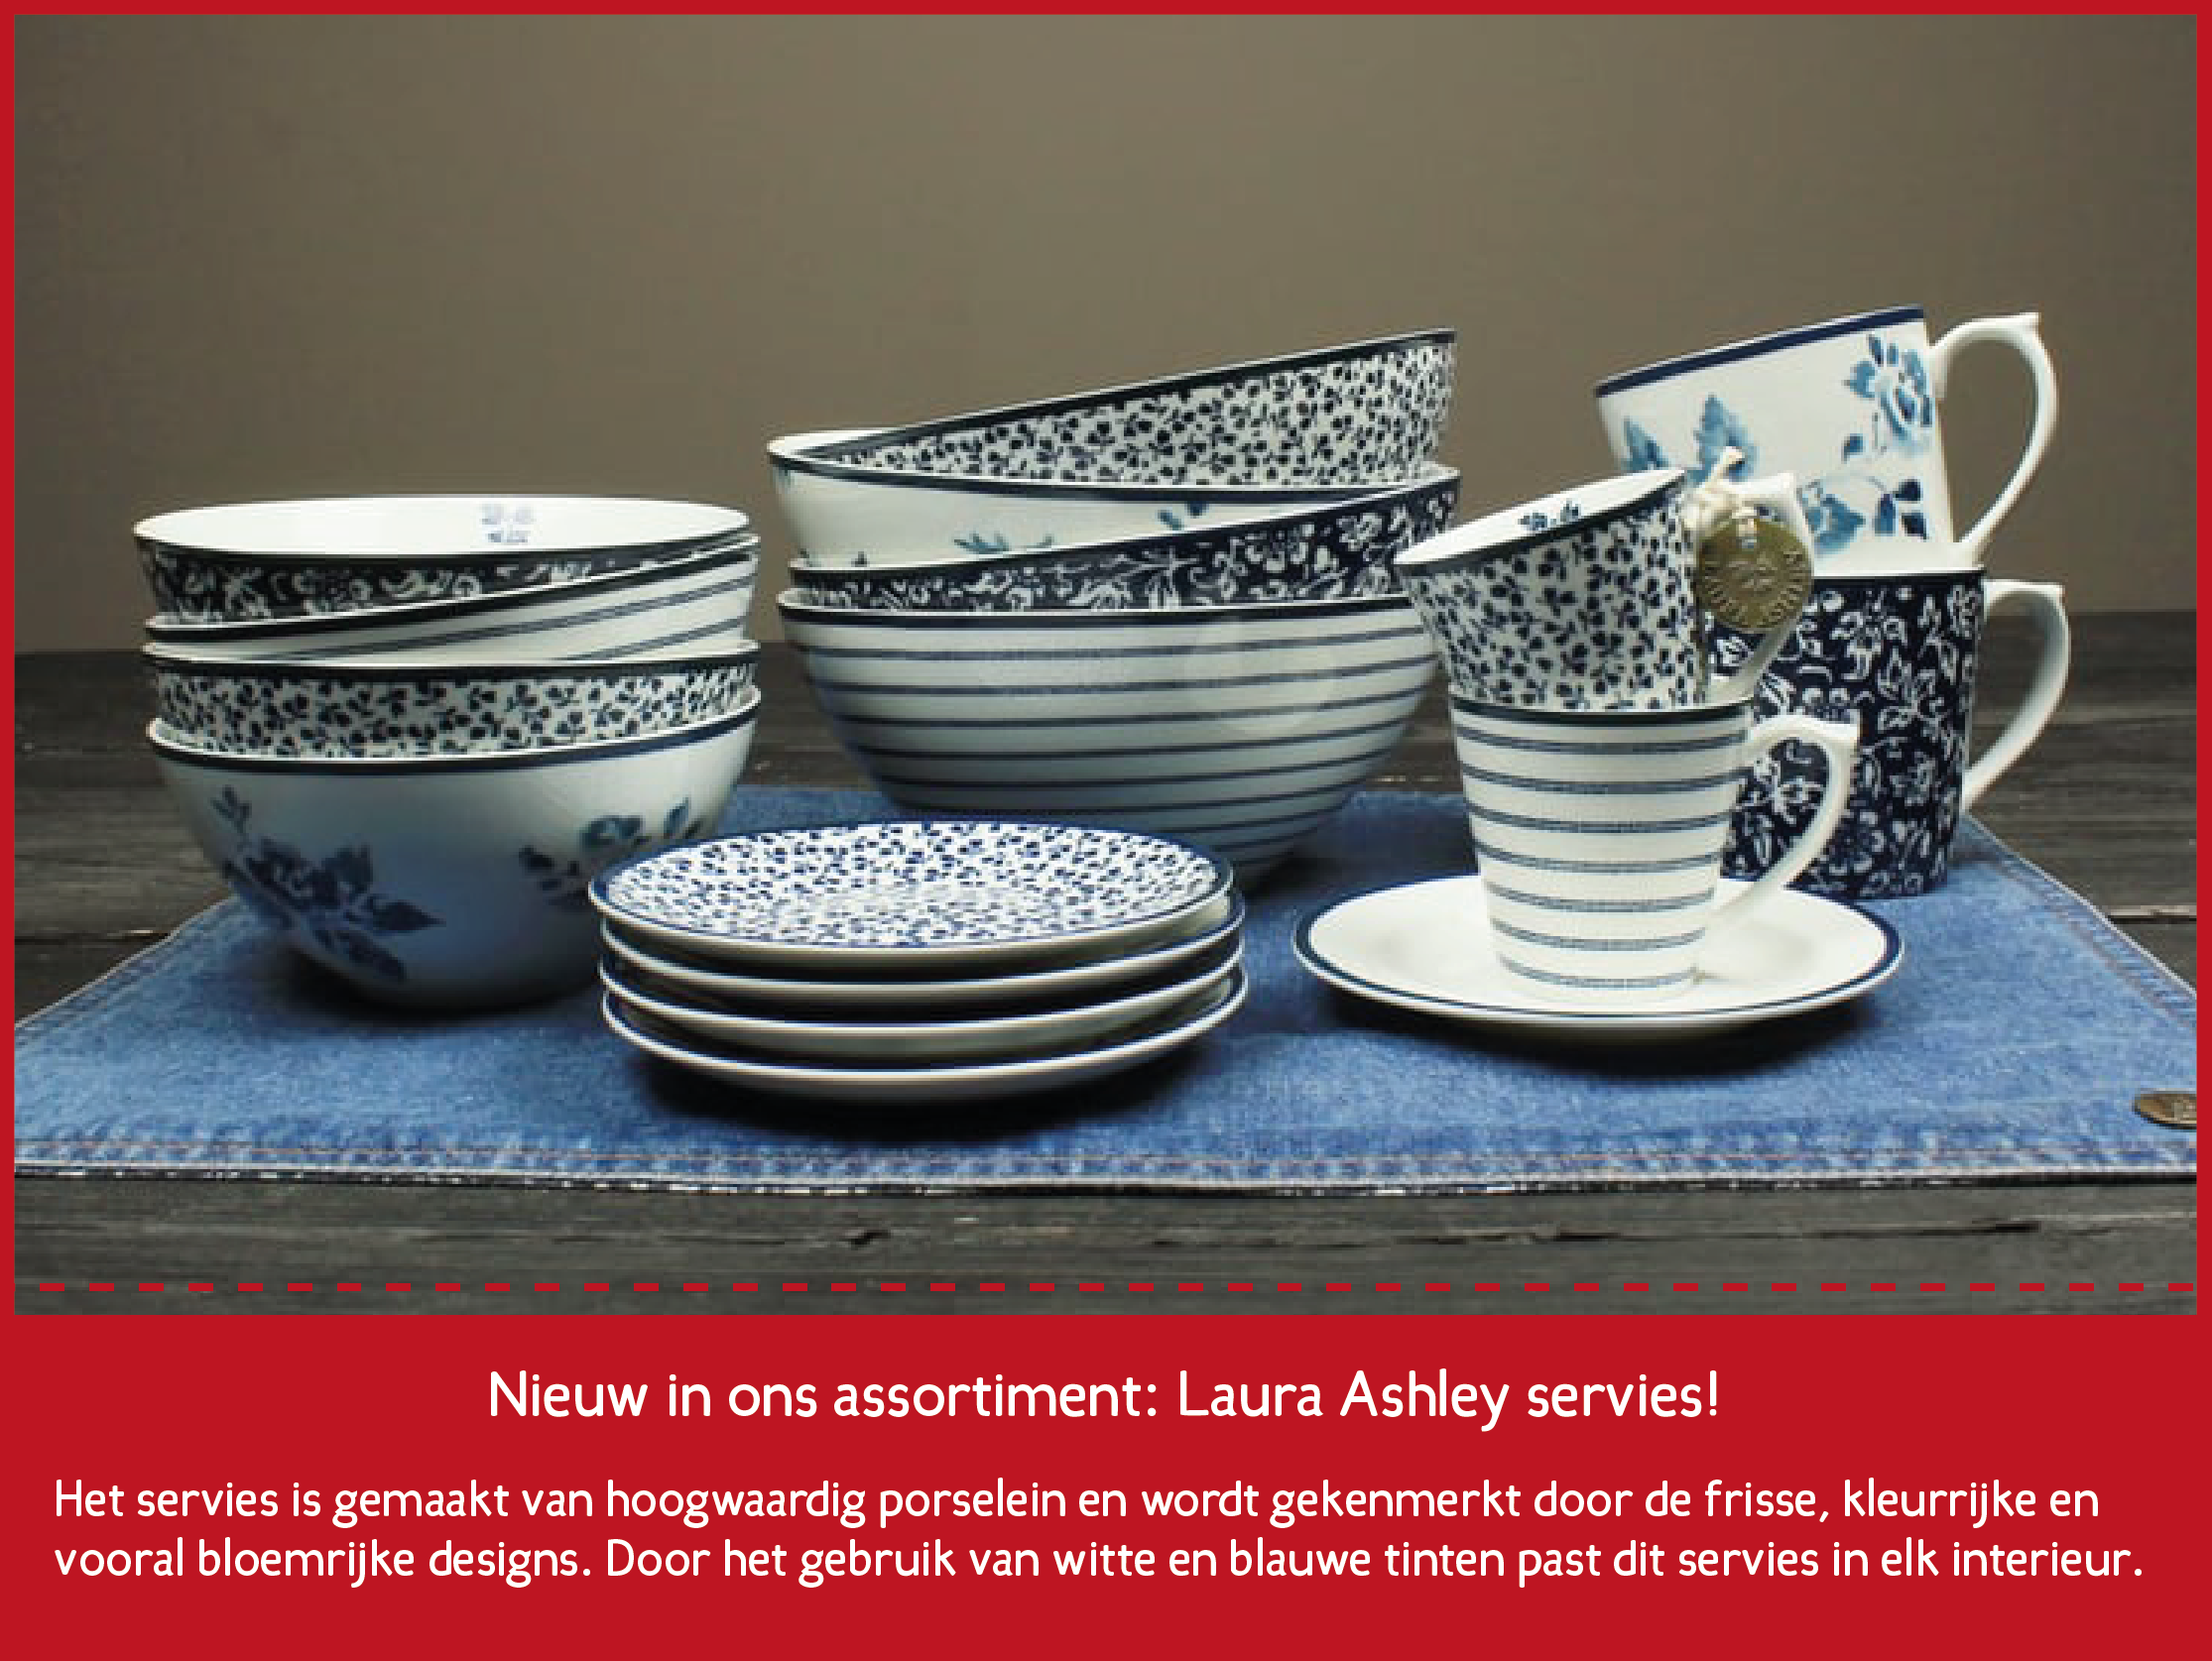 Nieuw-Laura-Ashley-01